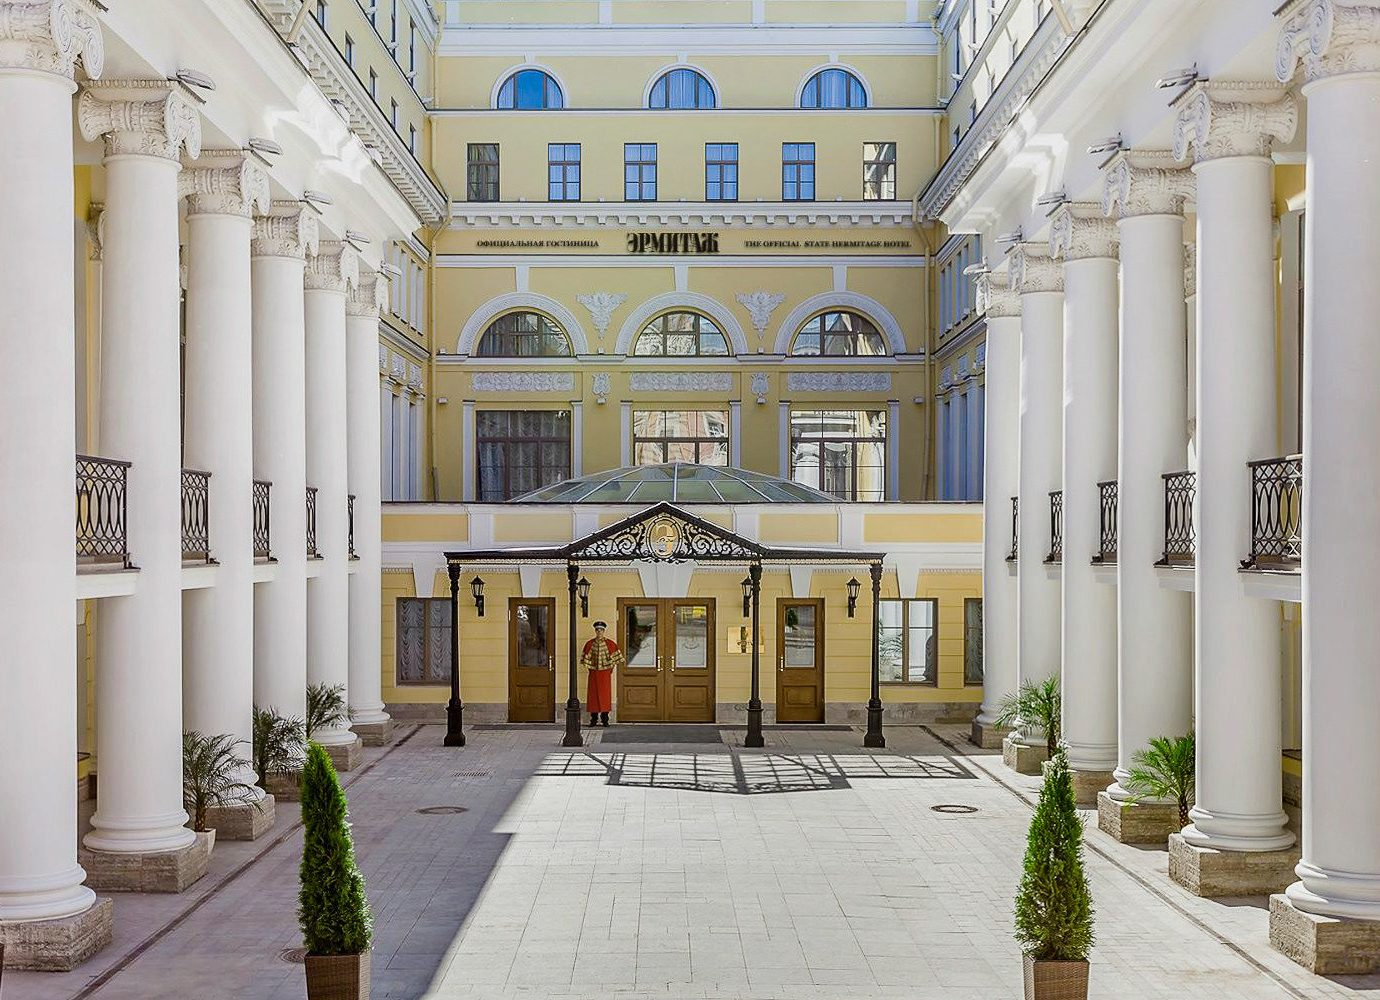 Arts + Culture Hotels Jetsetter Guides Luxury Travel property building classical architecture column estate structure Courtyard palace real estate facade arcade window mansion colonnade furniture